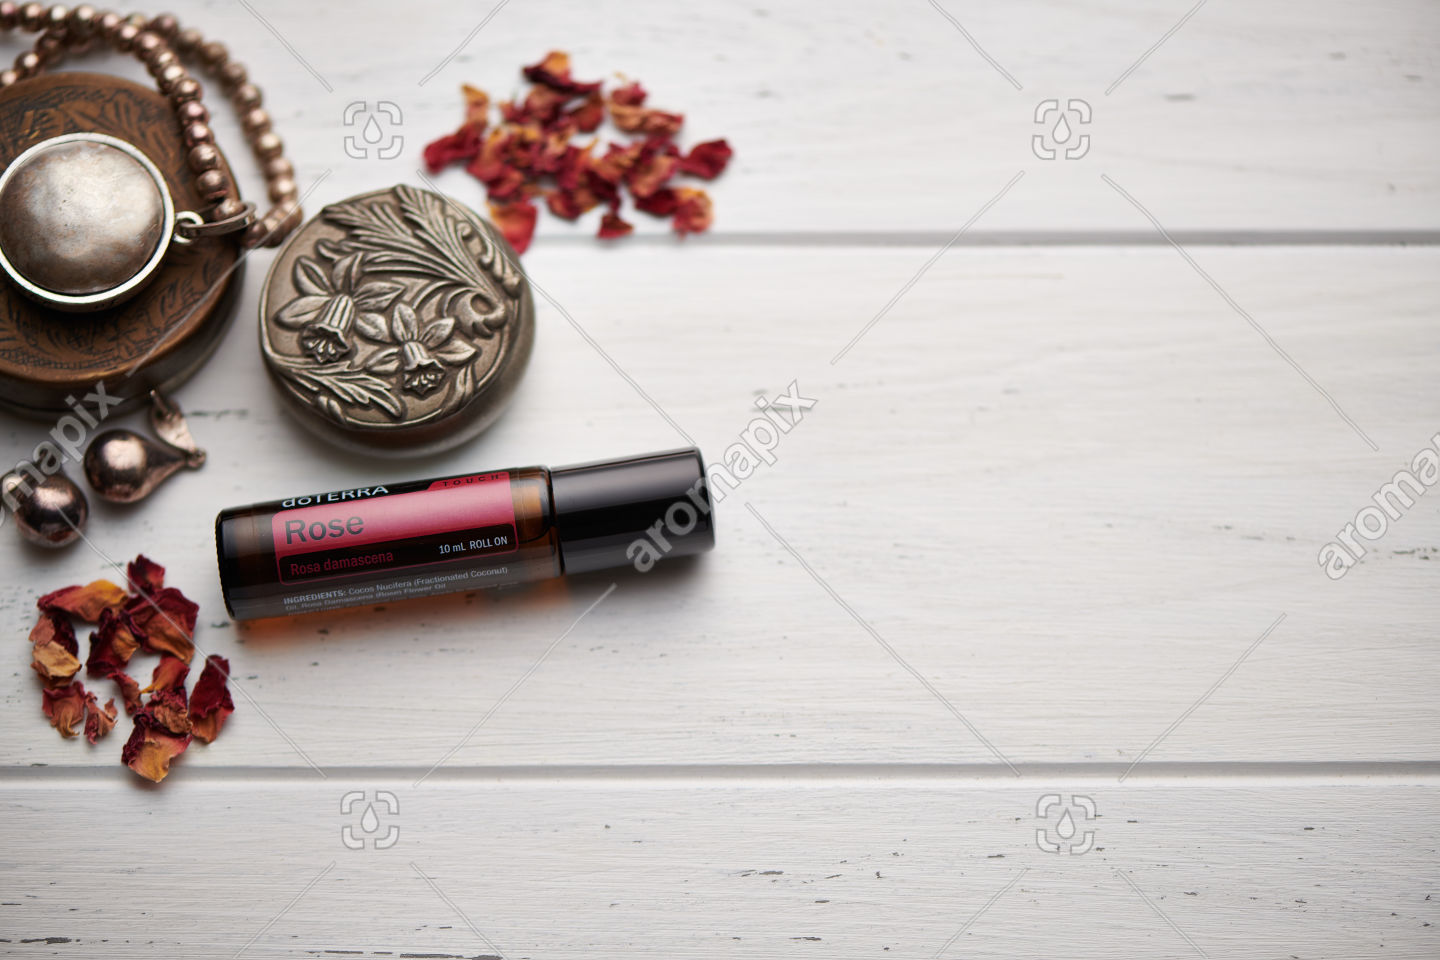 doTERRA Rose Touch on rustic background